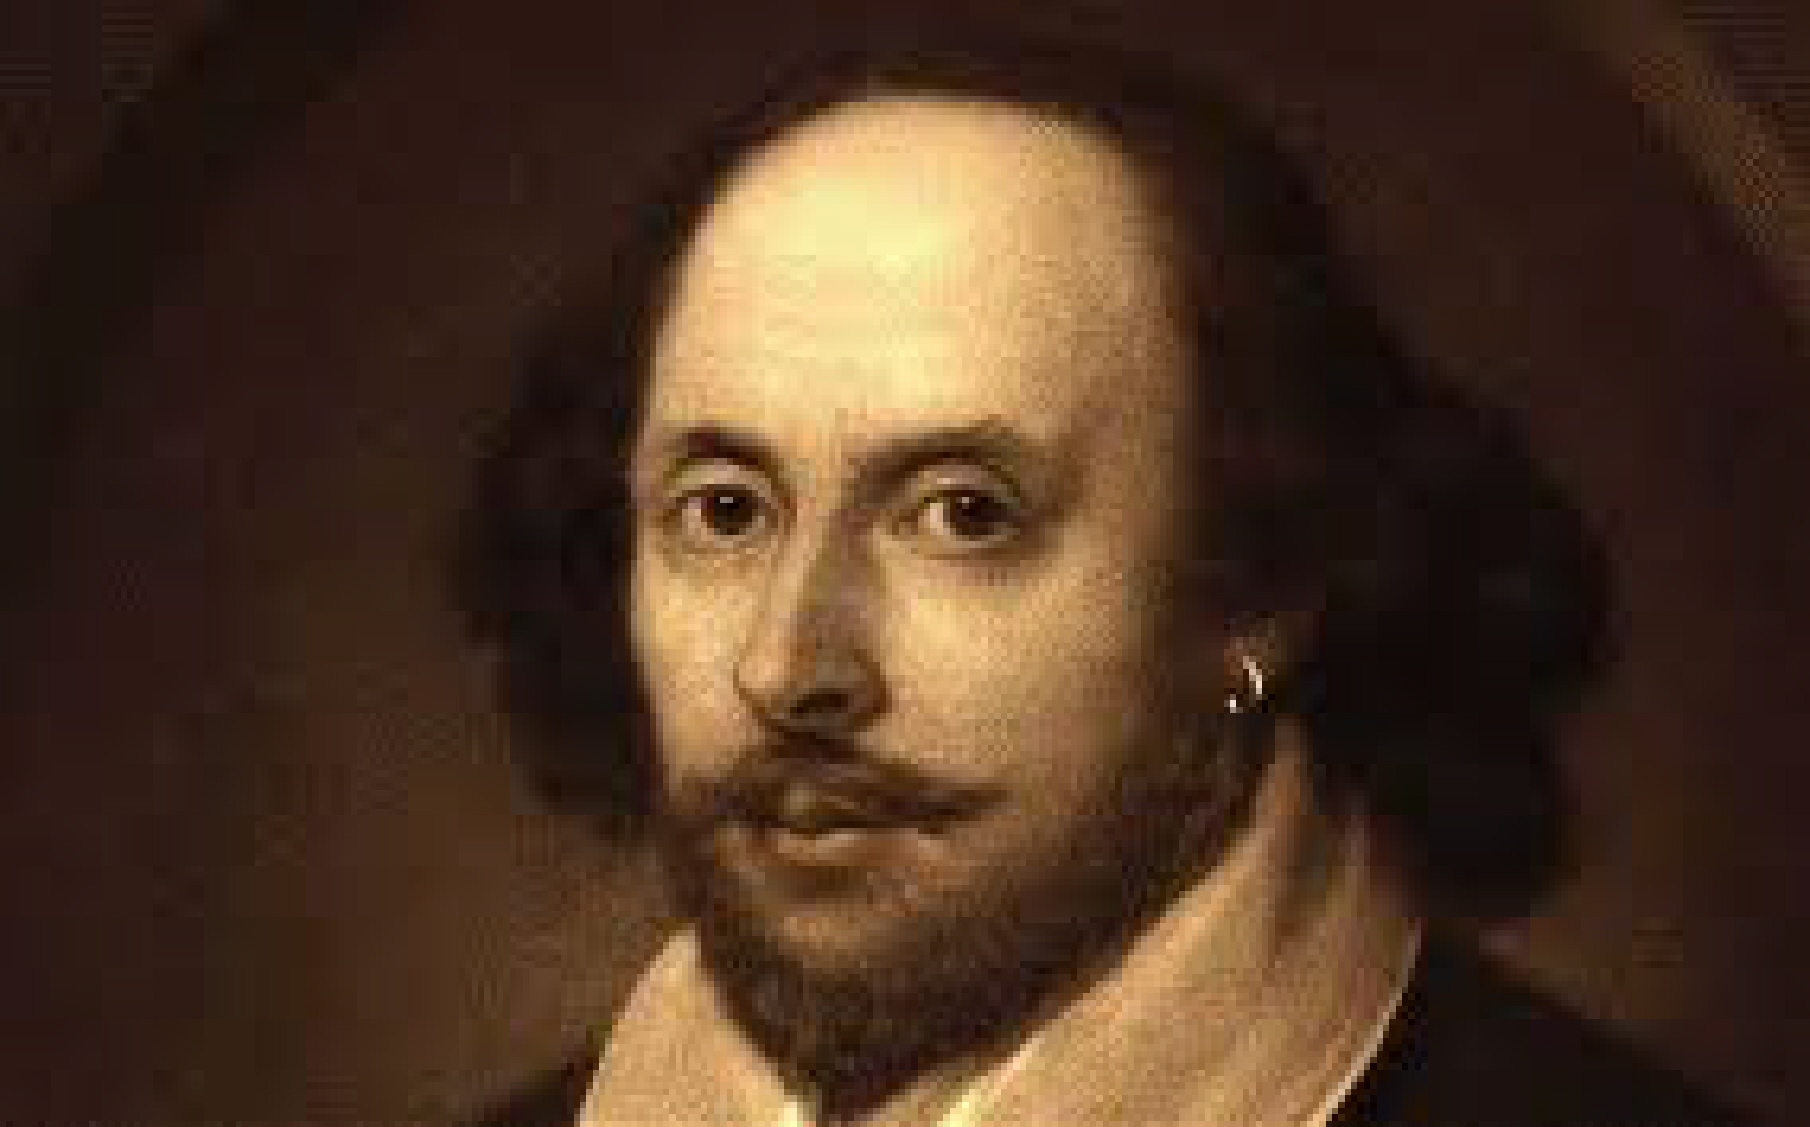 william shakespeare and his works F our hundred years have passed since william shakespeare penned his last play shakespeare most likely did not envision his works as fodder for high school.